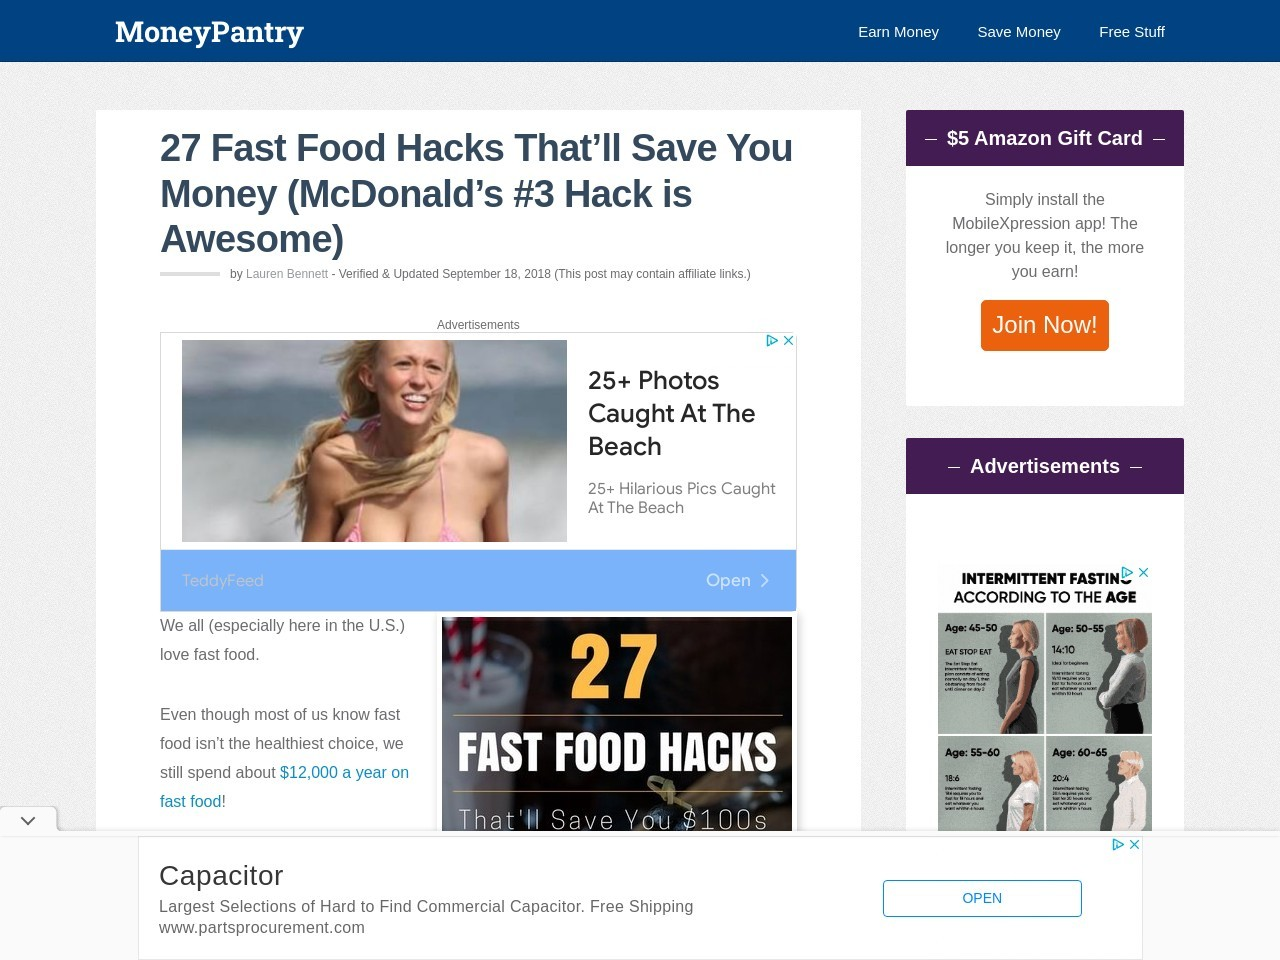 27 Fast Food Hacks That'll Save You Money (McDonald's #3 Hack is Awesome)